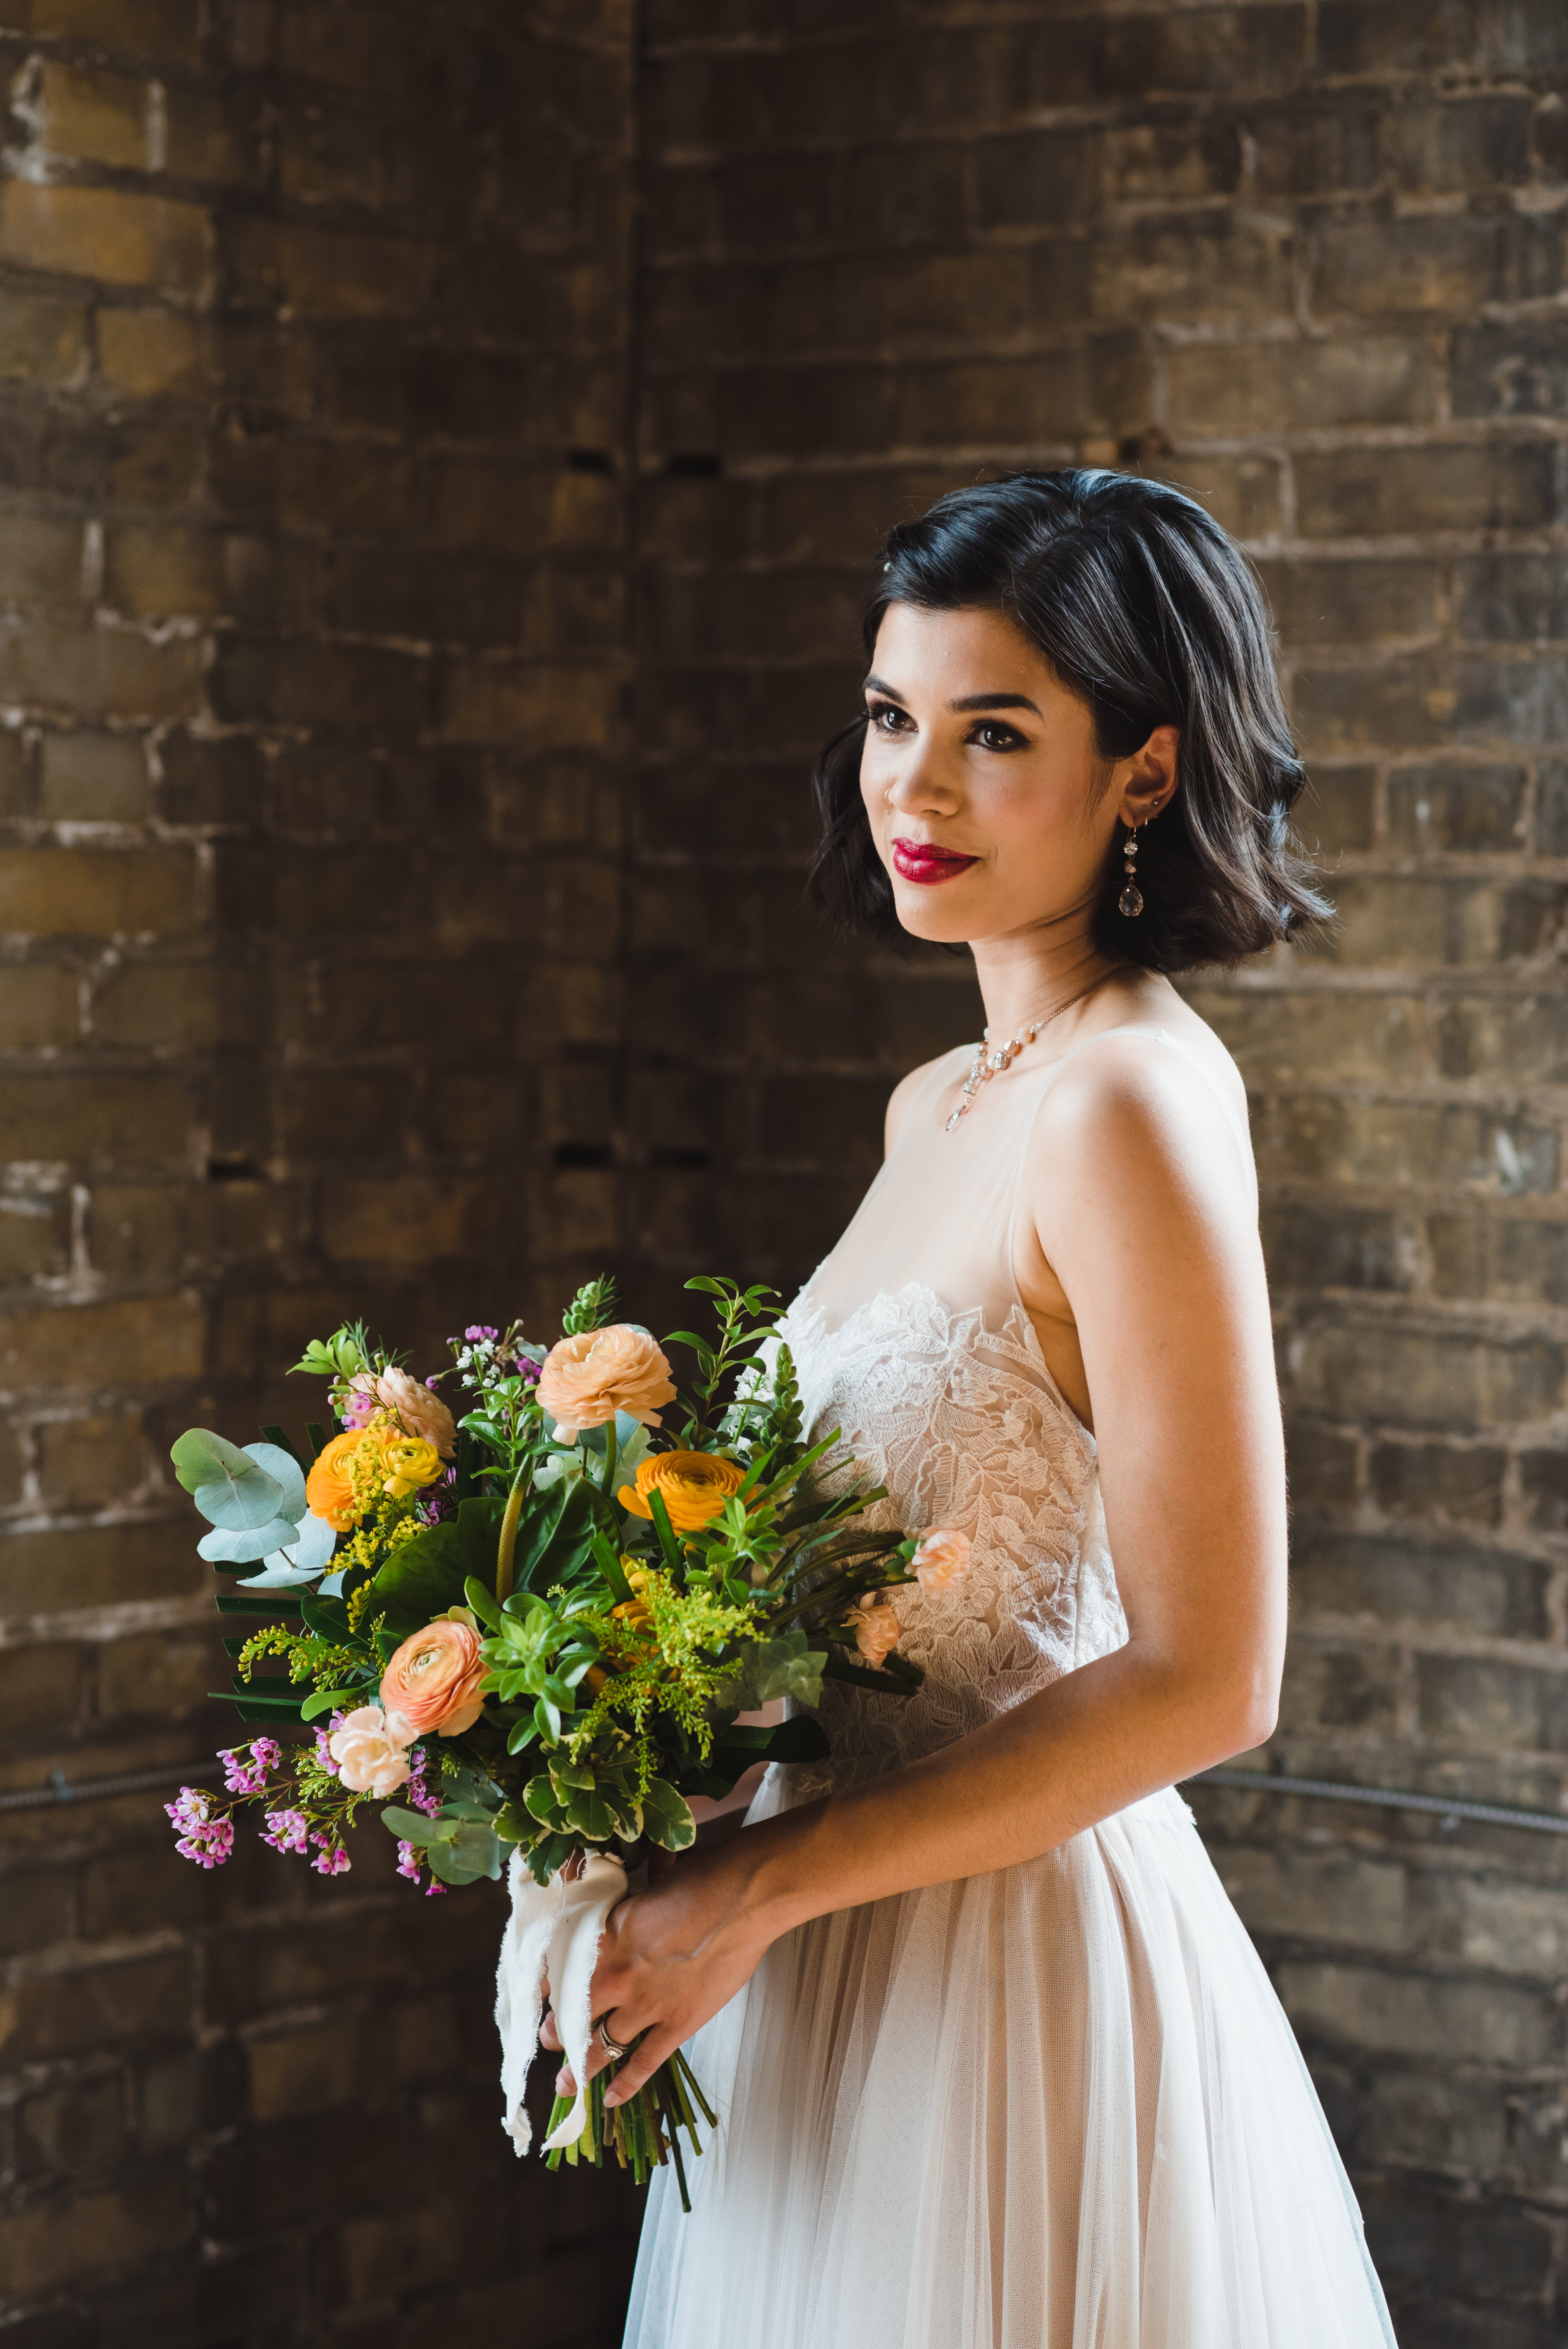 bride and her bouquet standing in front of old brick wall at the Jam Factory Toronto wedding photography